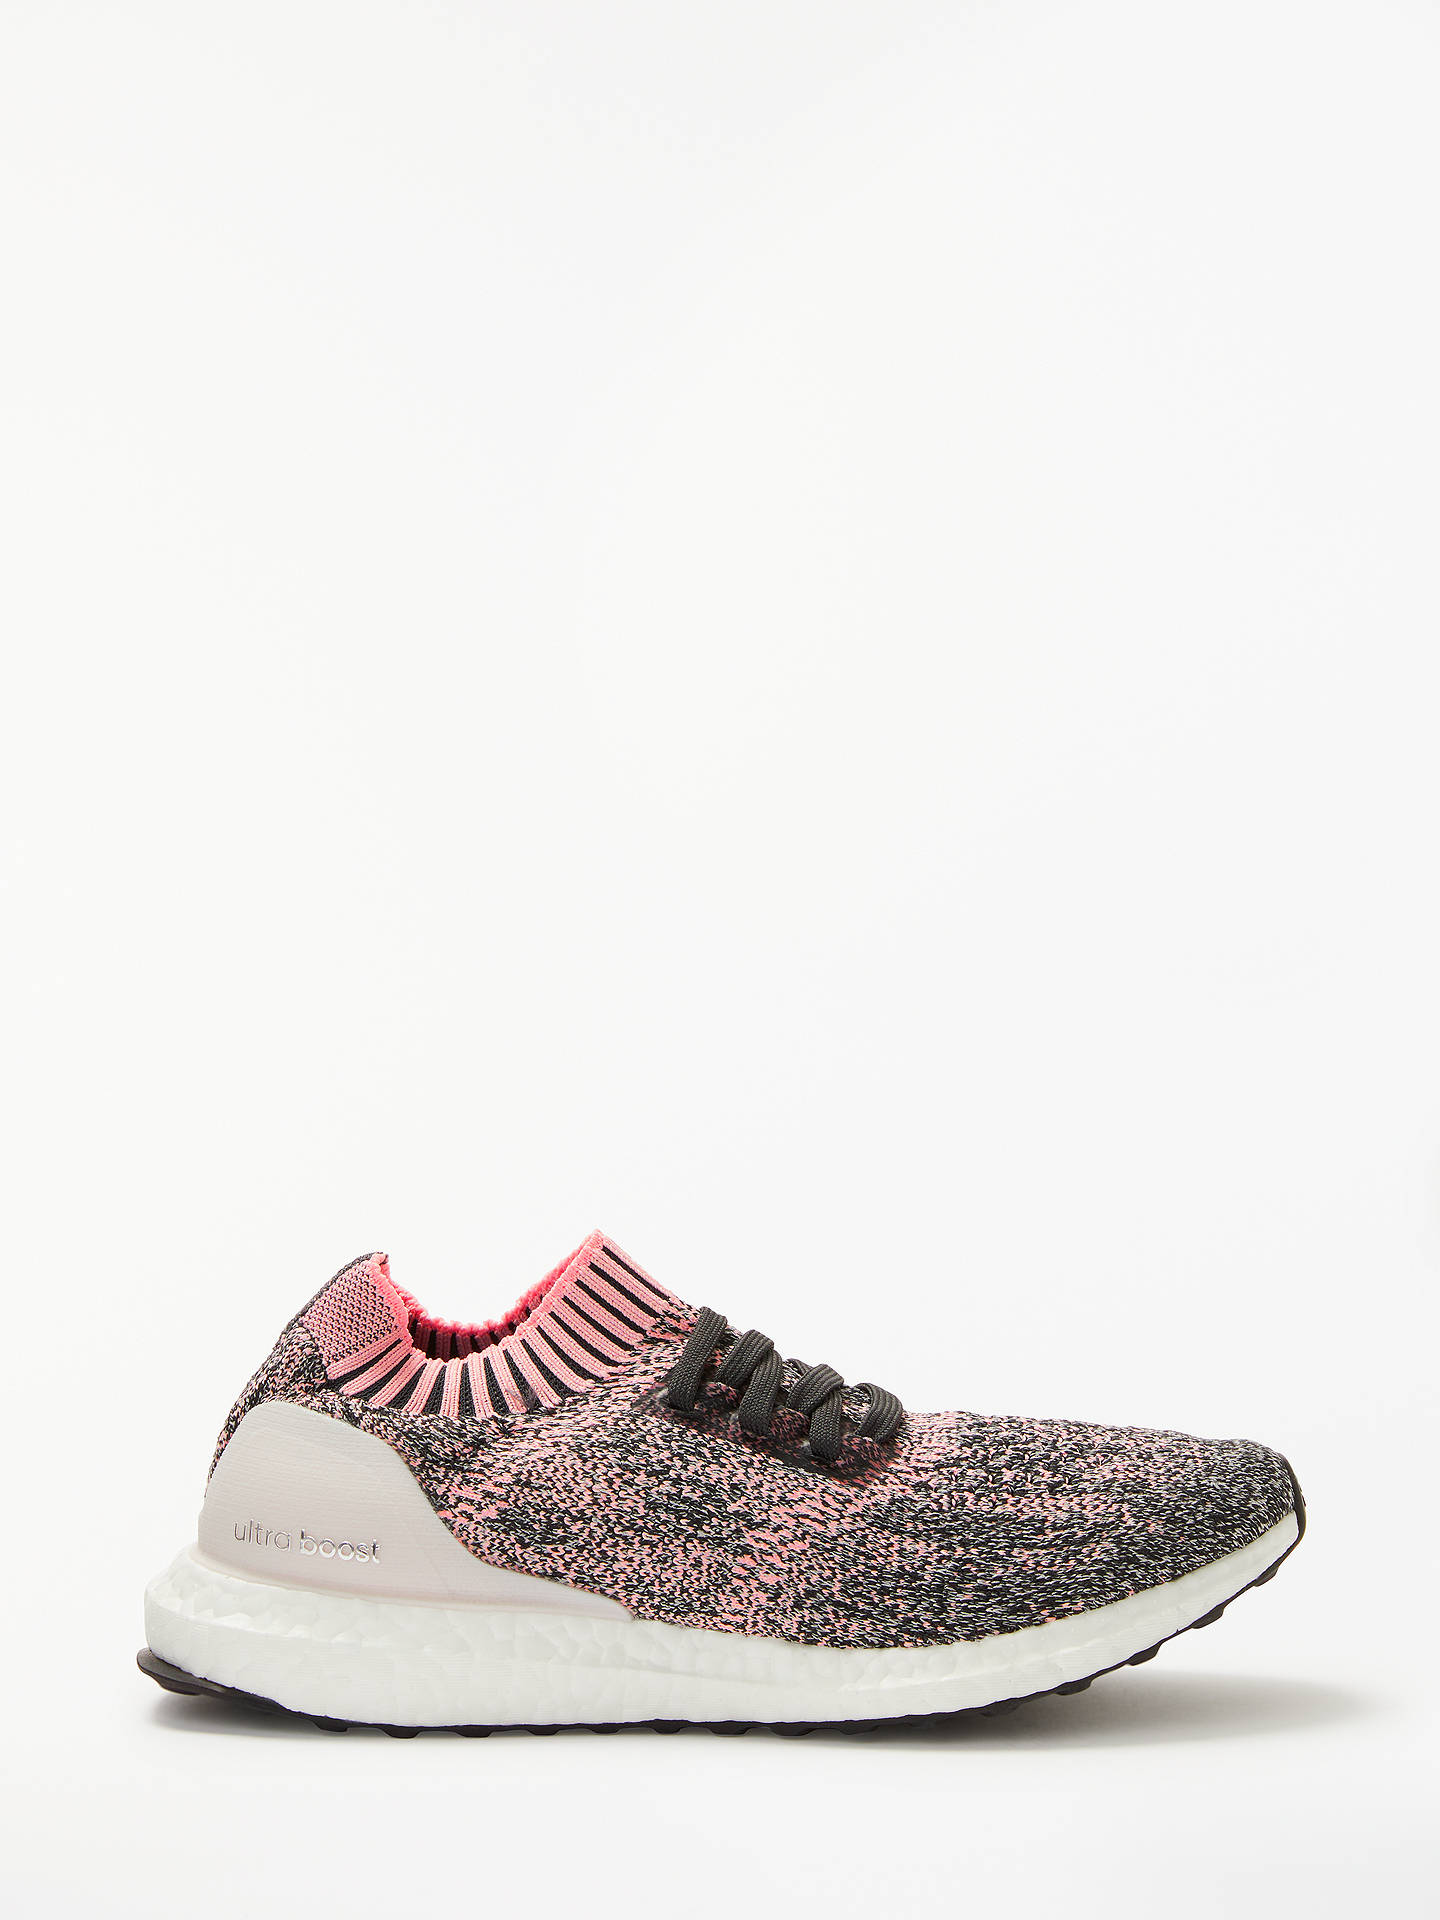 d77138a034b16 Buy adidas UltraBOOST Uncaged Women s Running Shoes